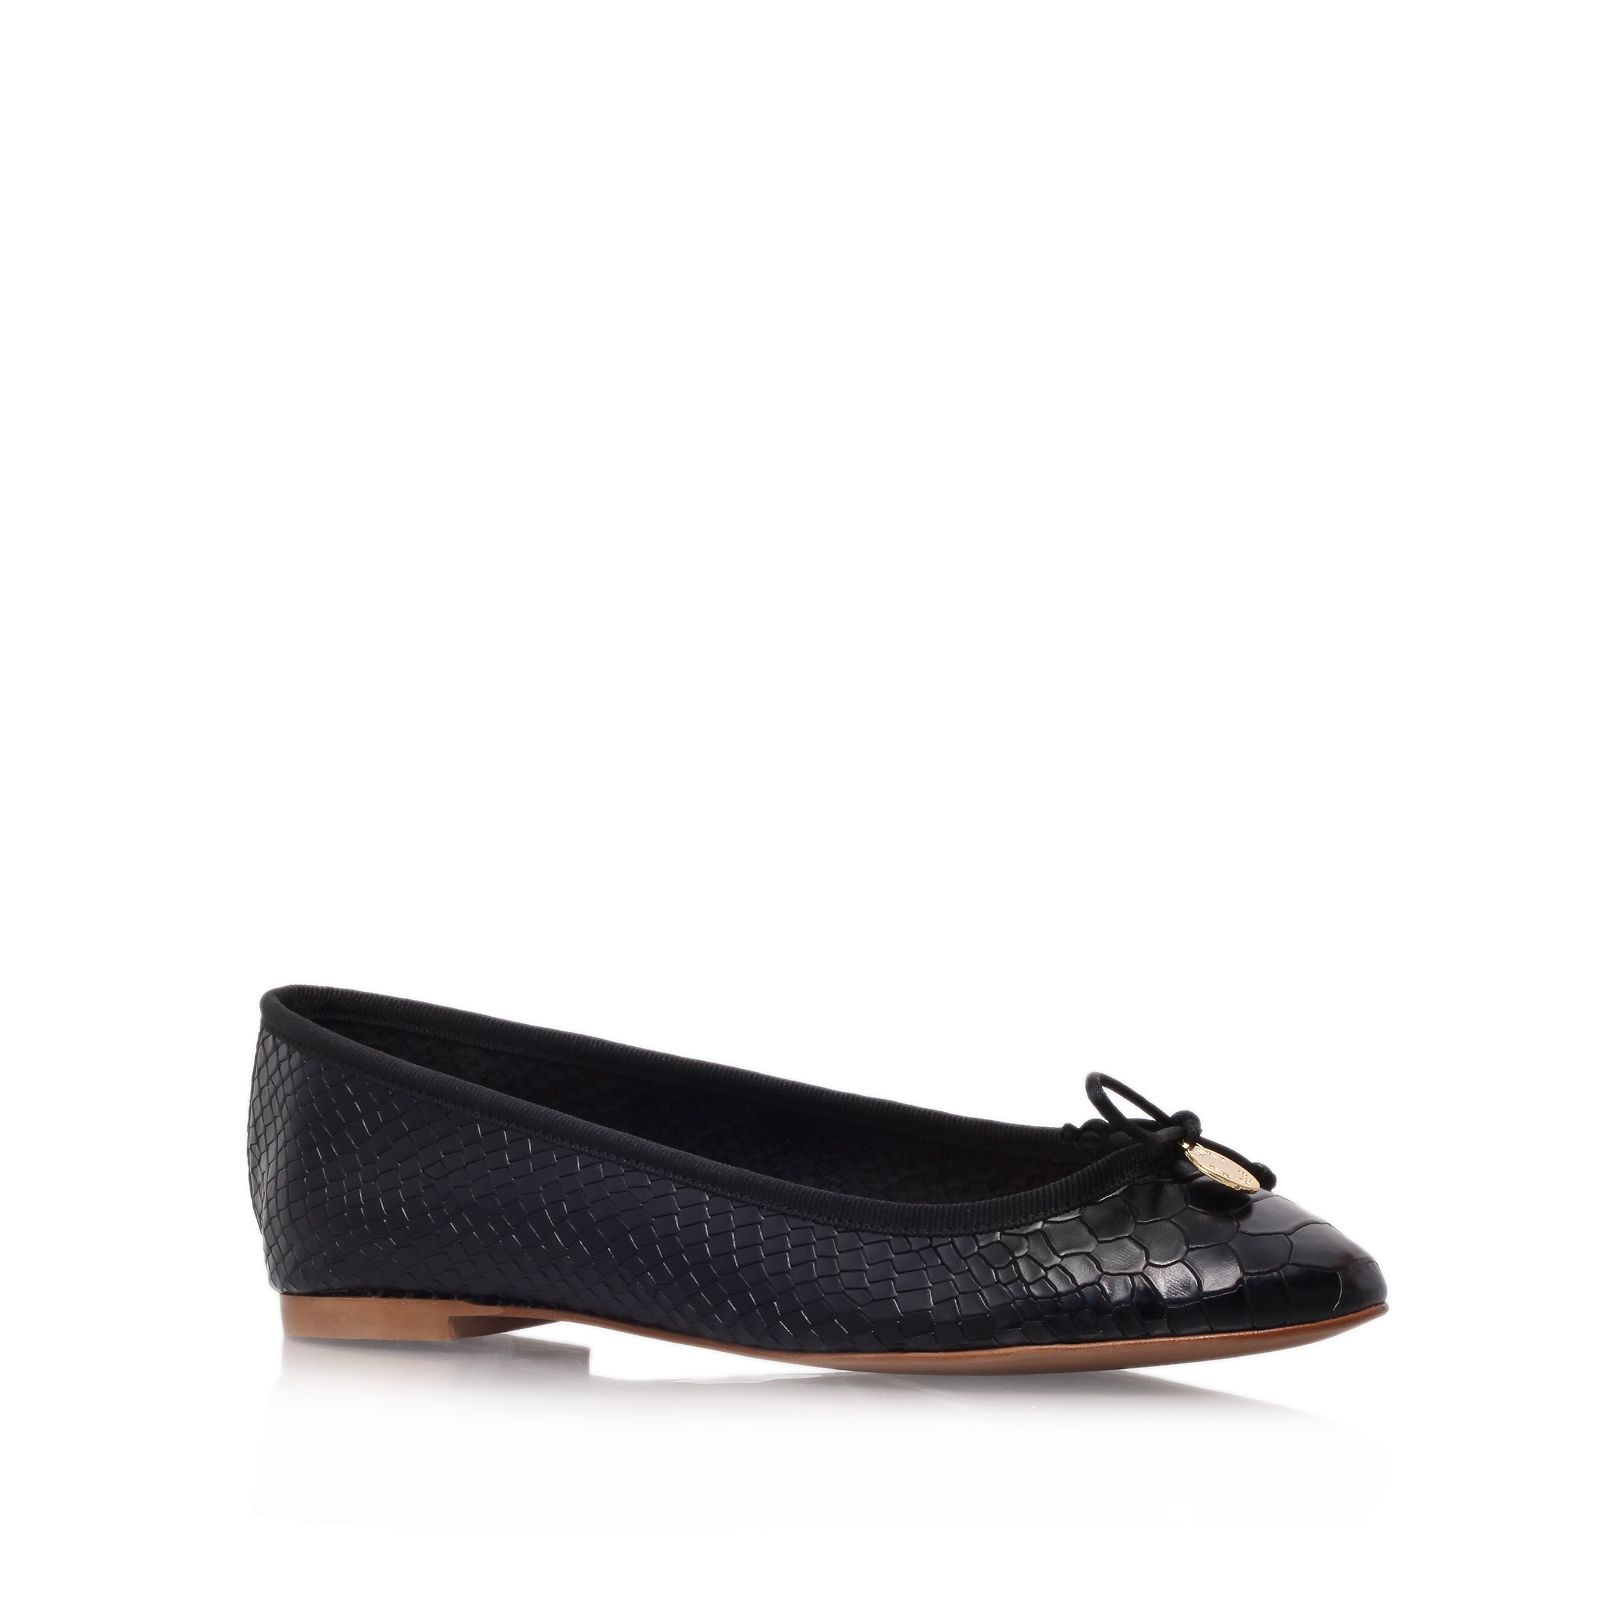 Lourdes leather ballet pumps